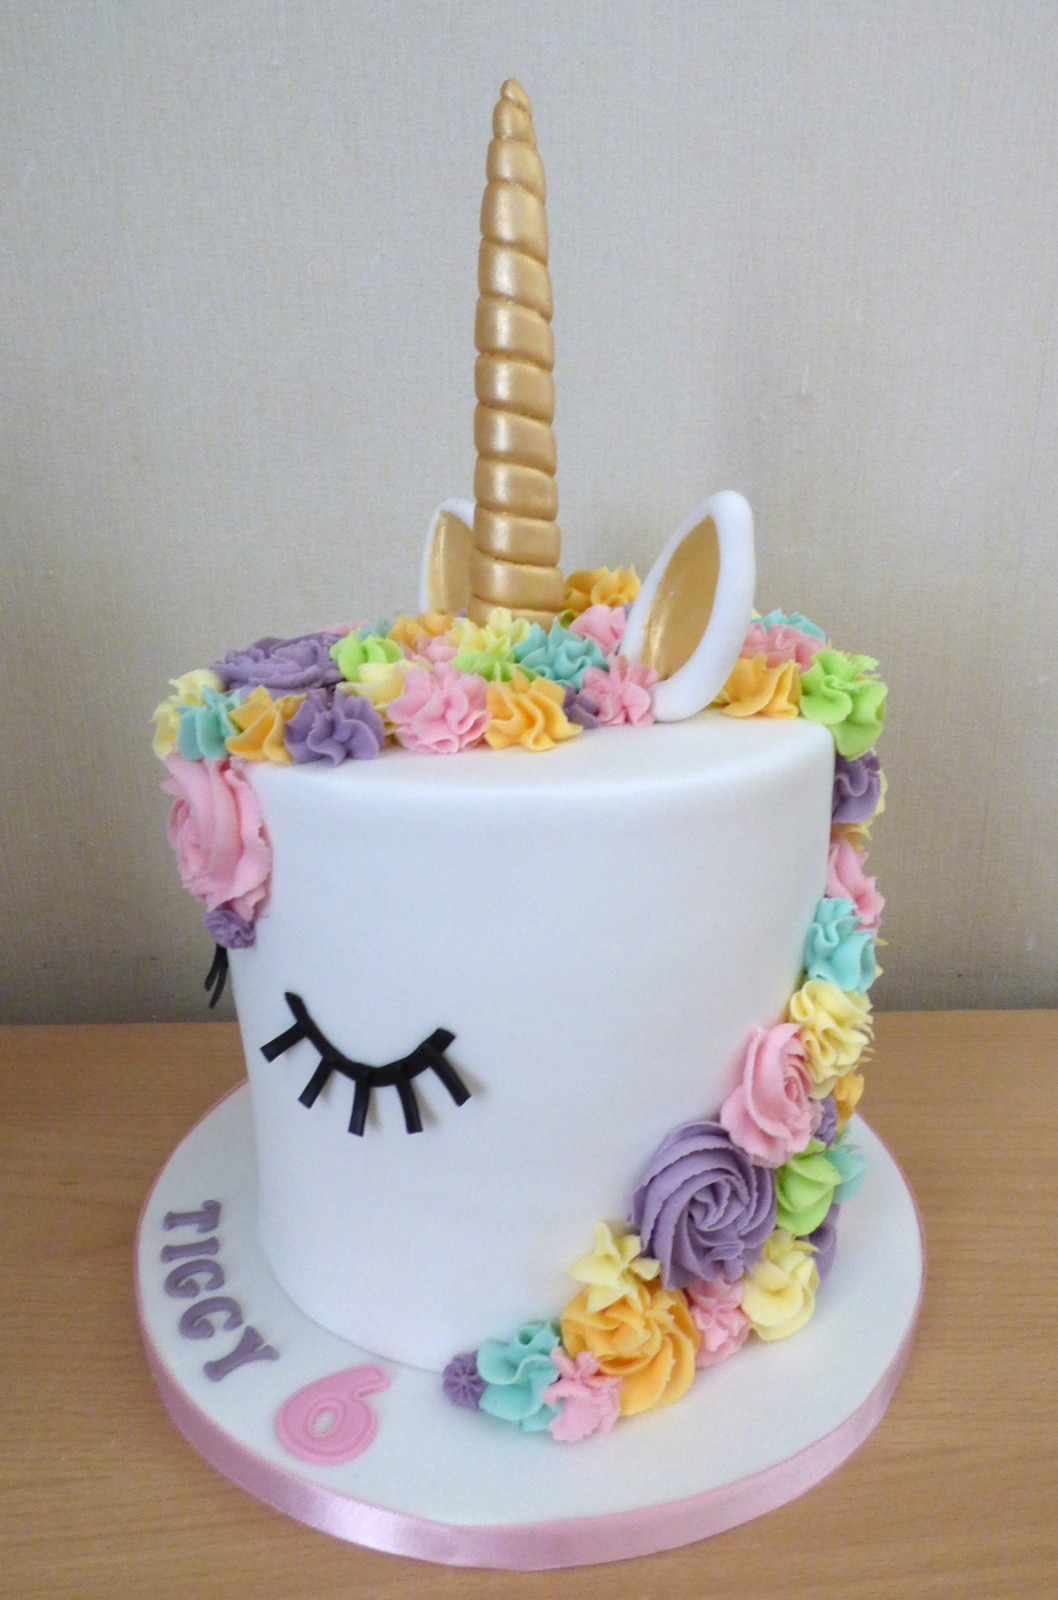 My Little Pony Cake Design